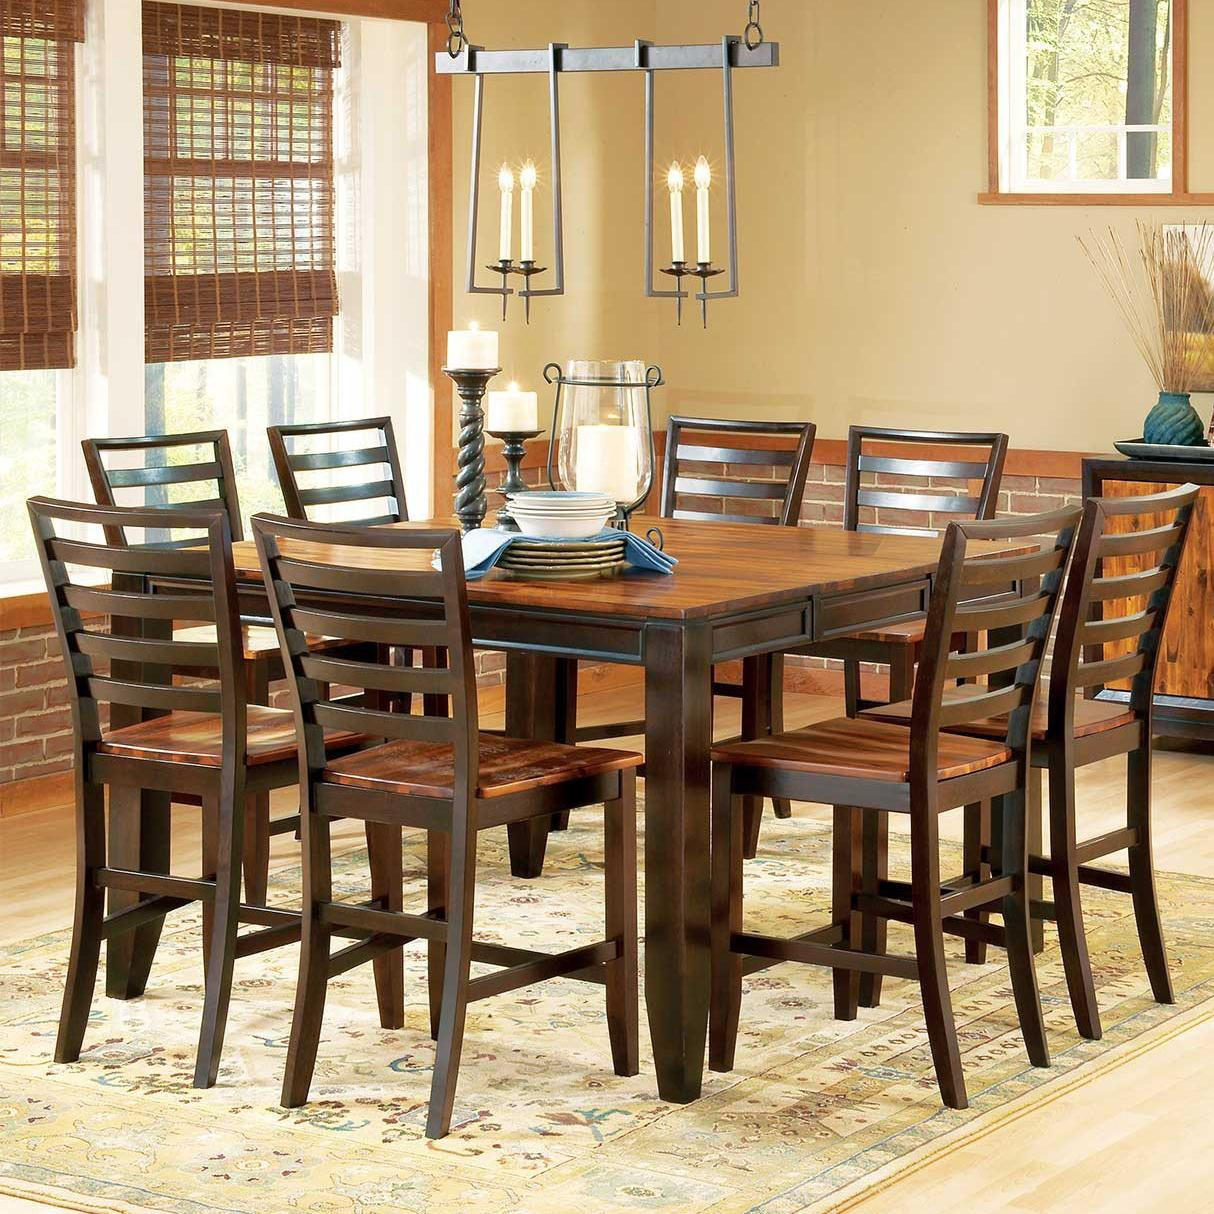 Building A Dining Room Table With Leaves Belfort Essentials Abaco 9 Piece Gathering Table Set 54